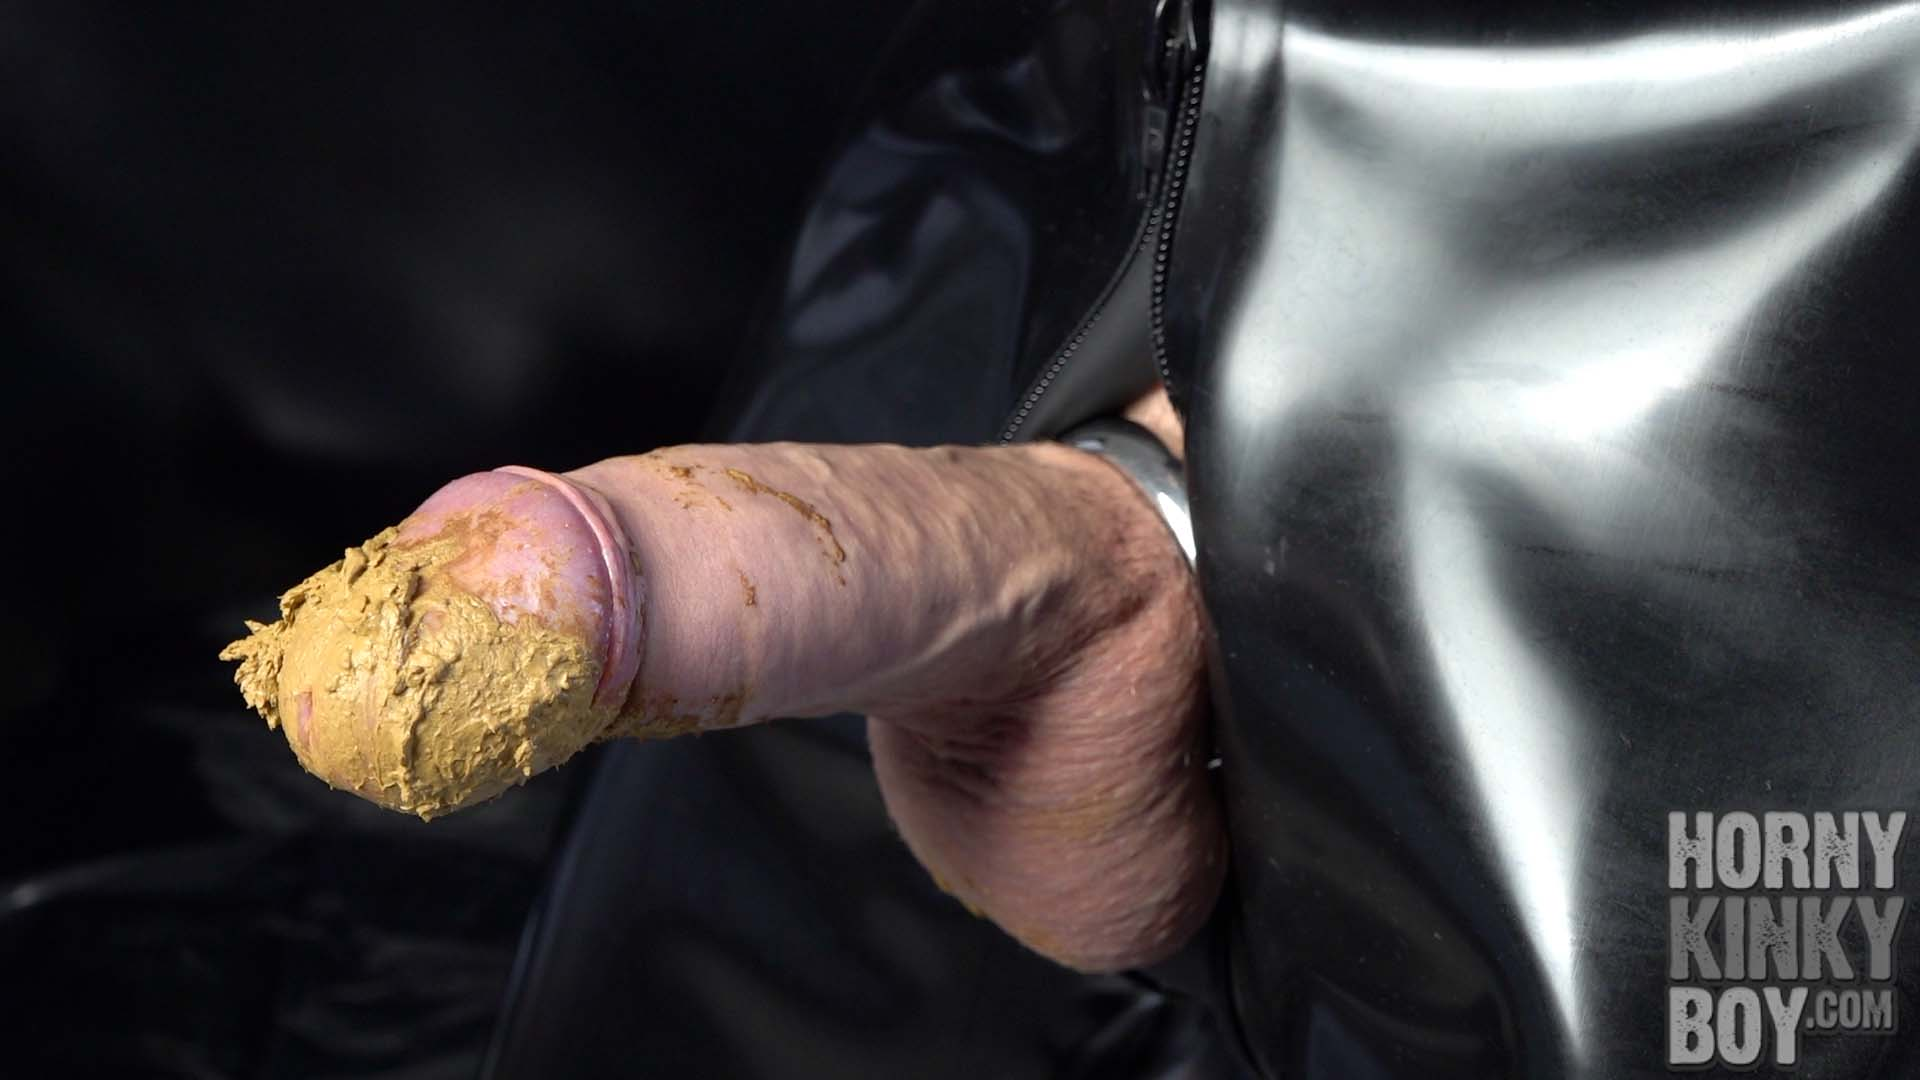 Uncut Penis With Shit Covered Dick Head